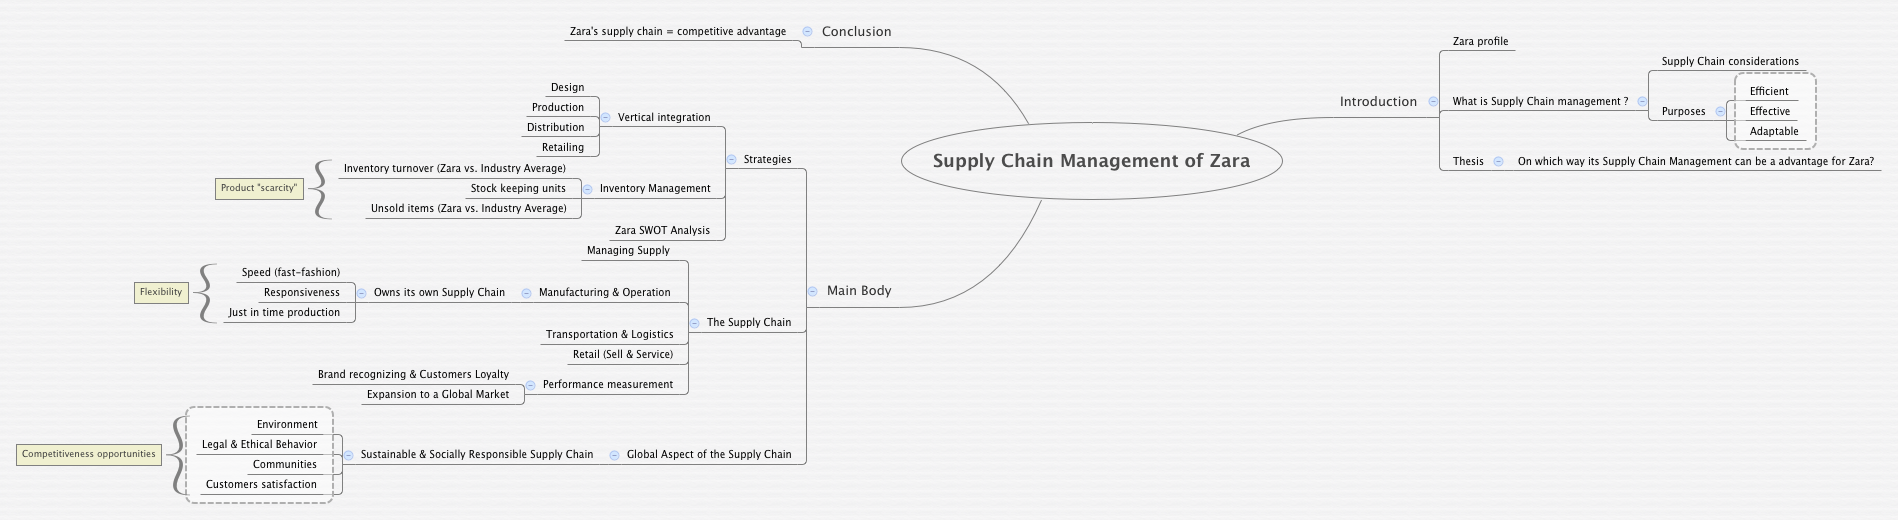 zara swot analysis swot assignment supply chain management of zara  supply chain management of zara online library